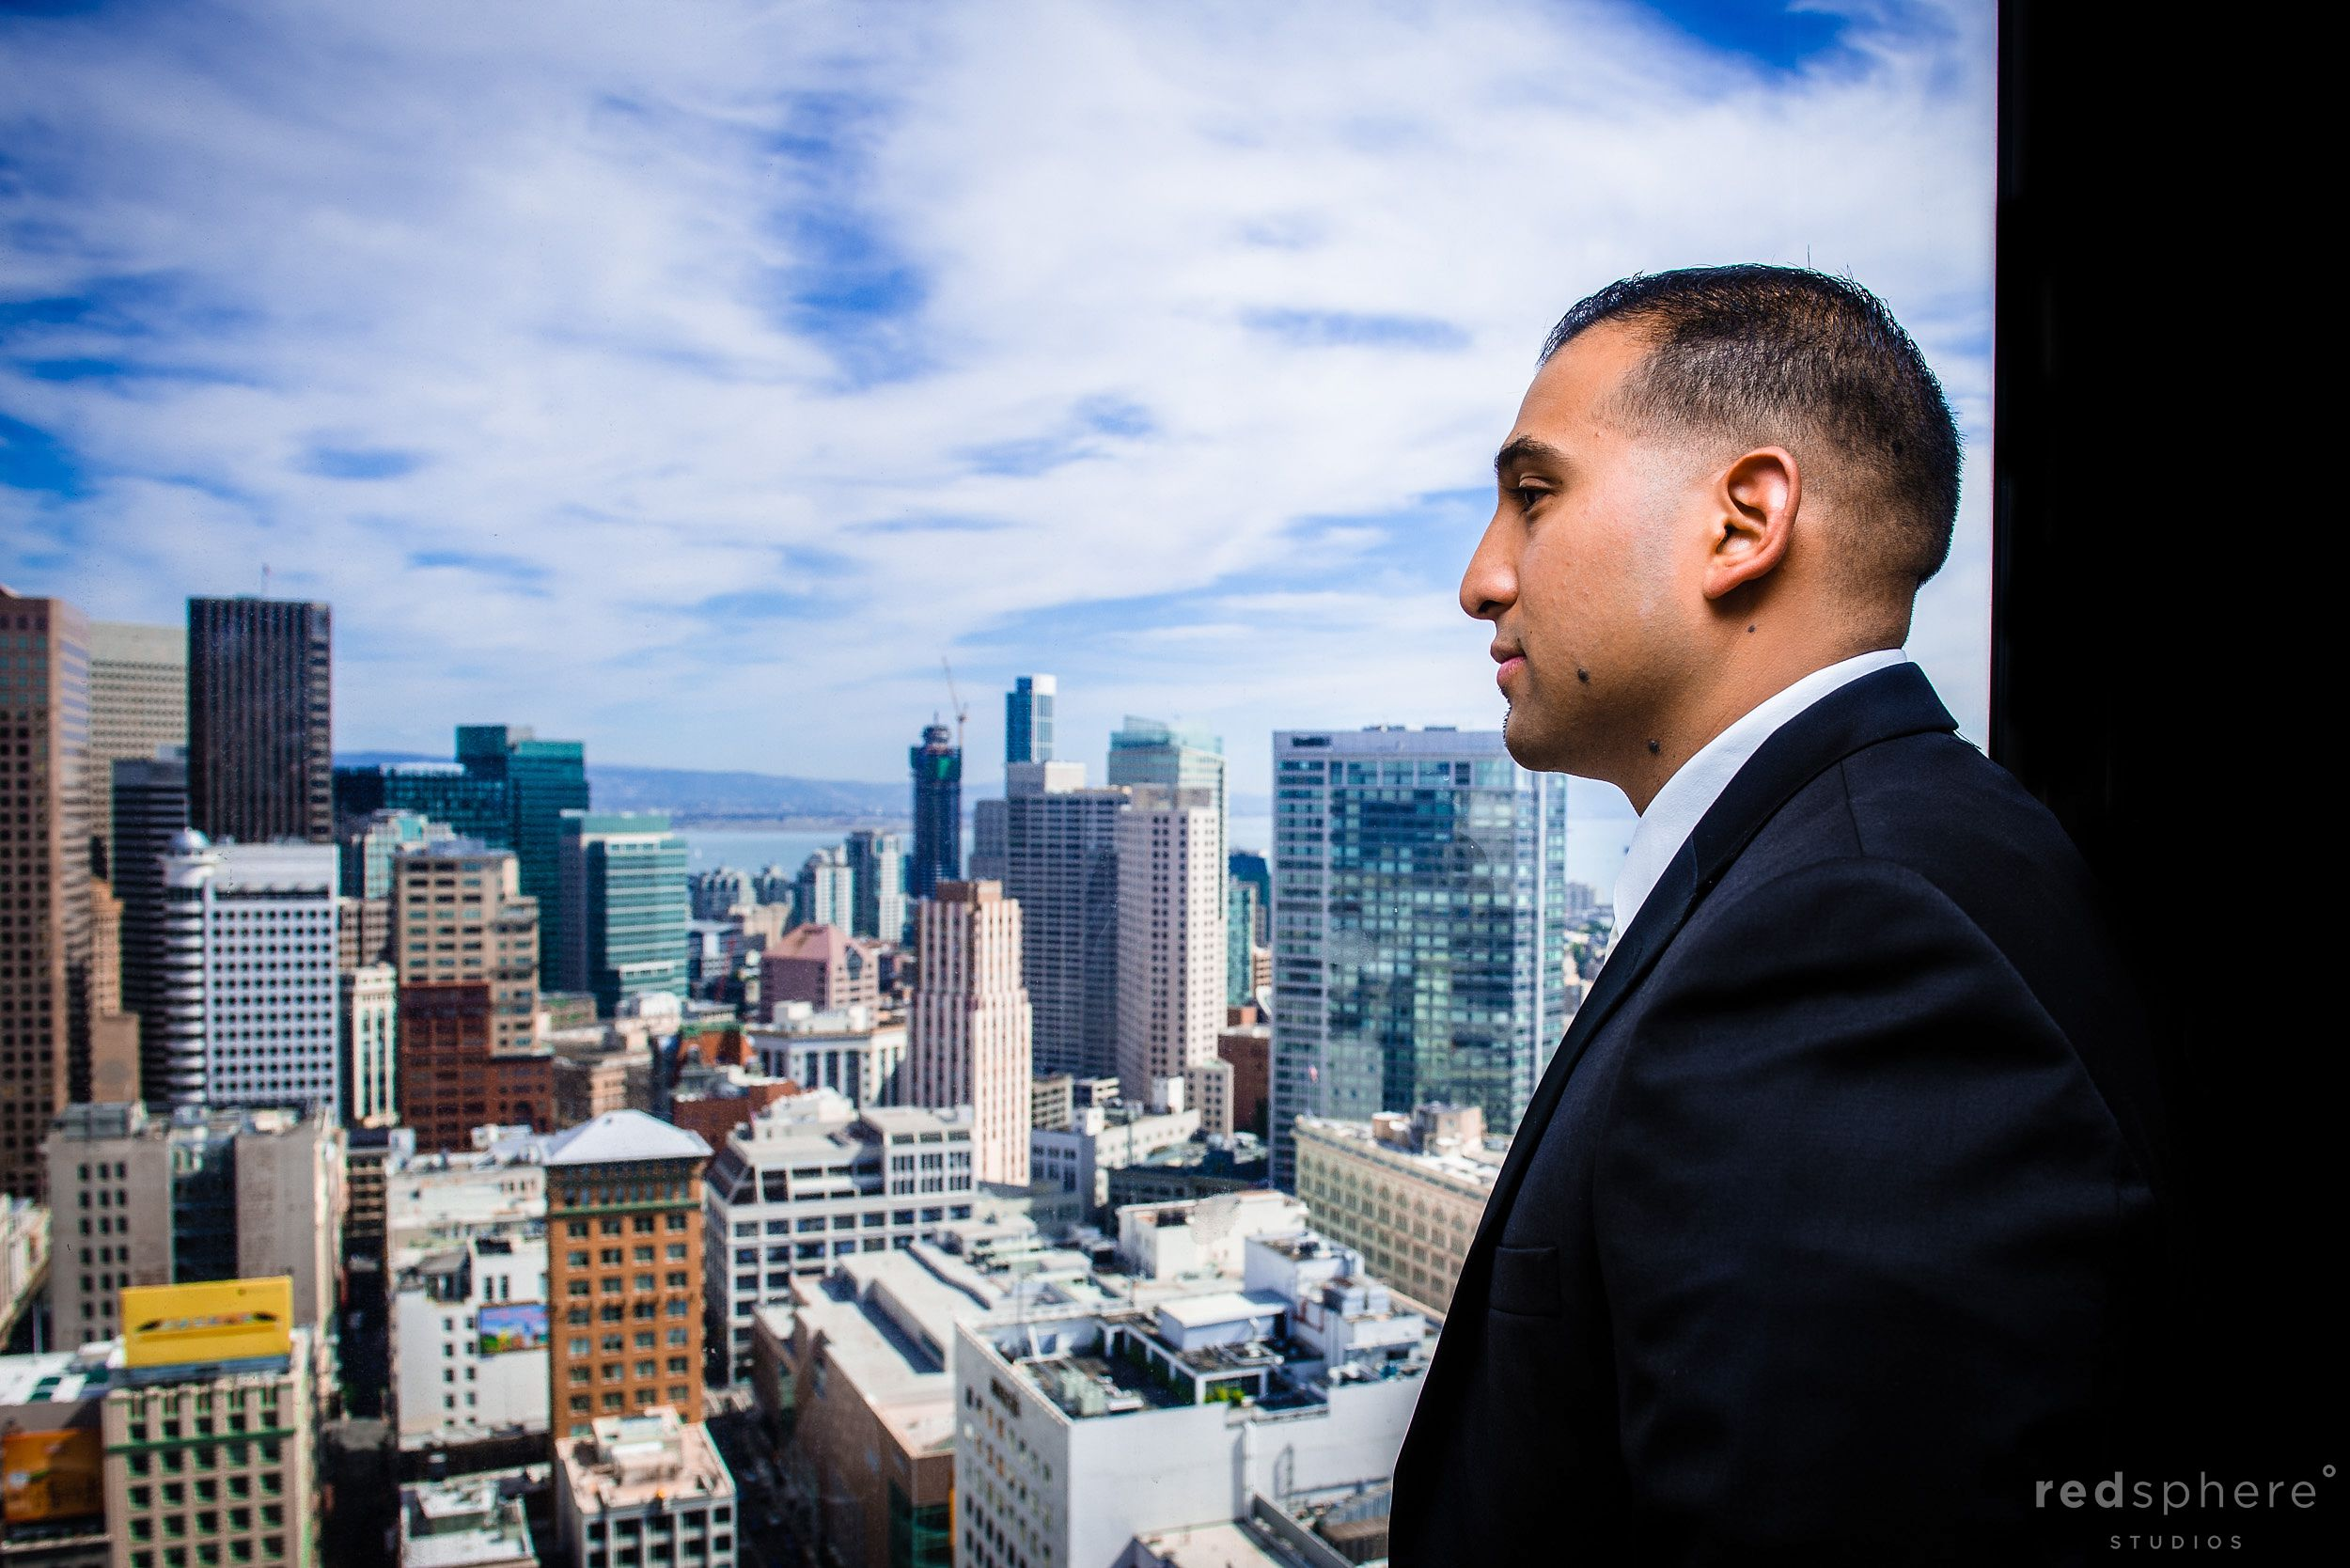 Groom Before Wedding Along The Gorgeous San Francisco Skyline, Westin St. Francis